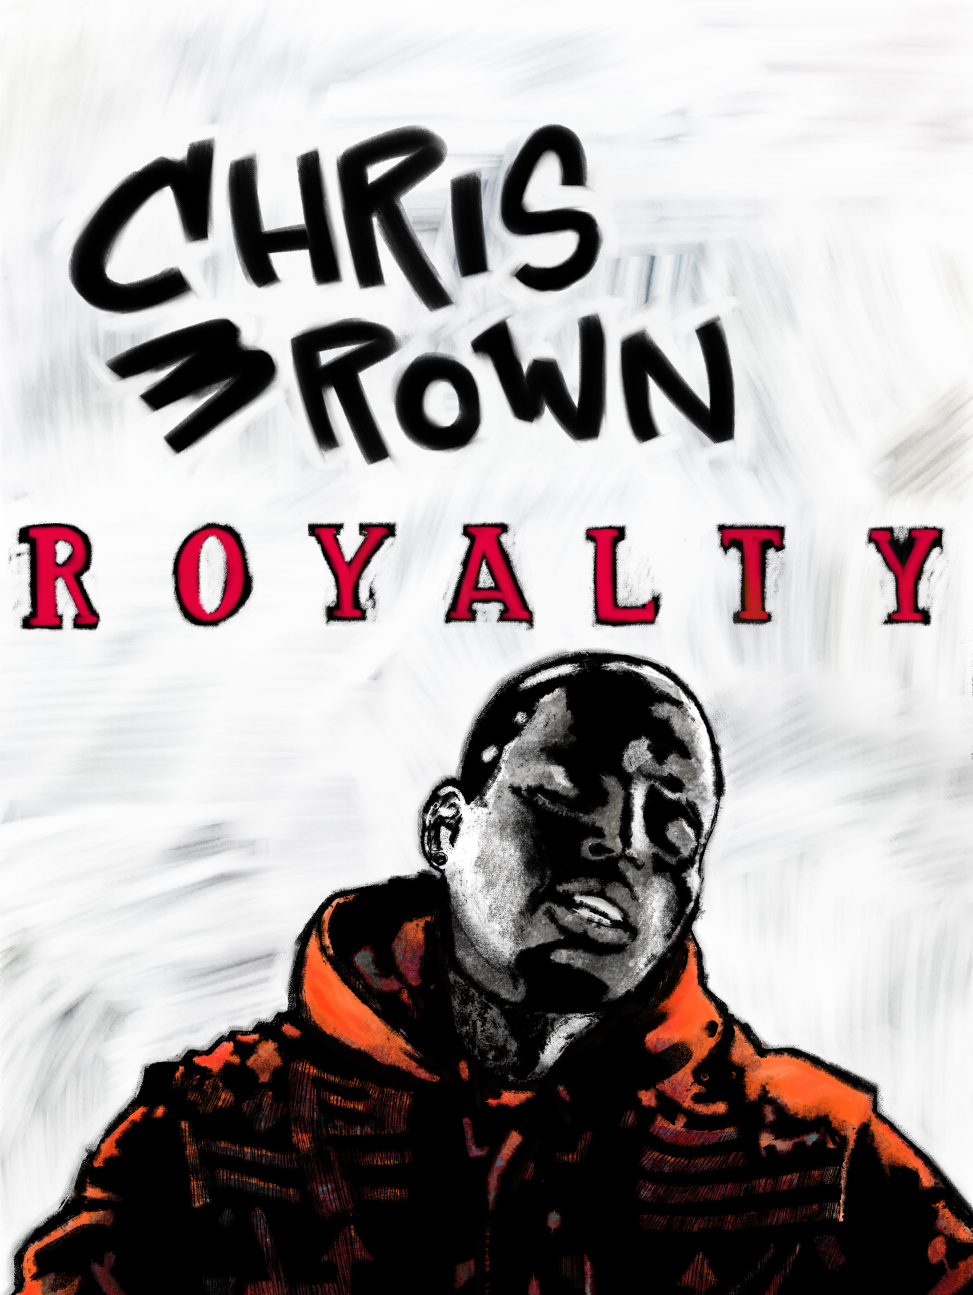 https://www.talenthouse.com/i/create-street-artwork-for-chris-brown-2